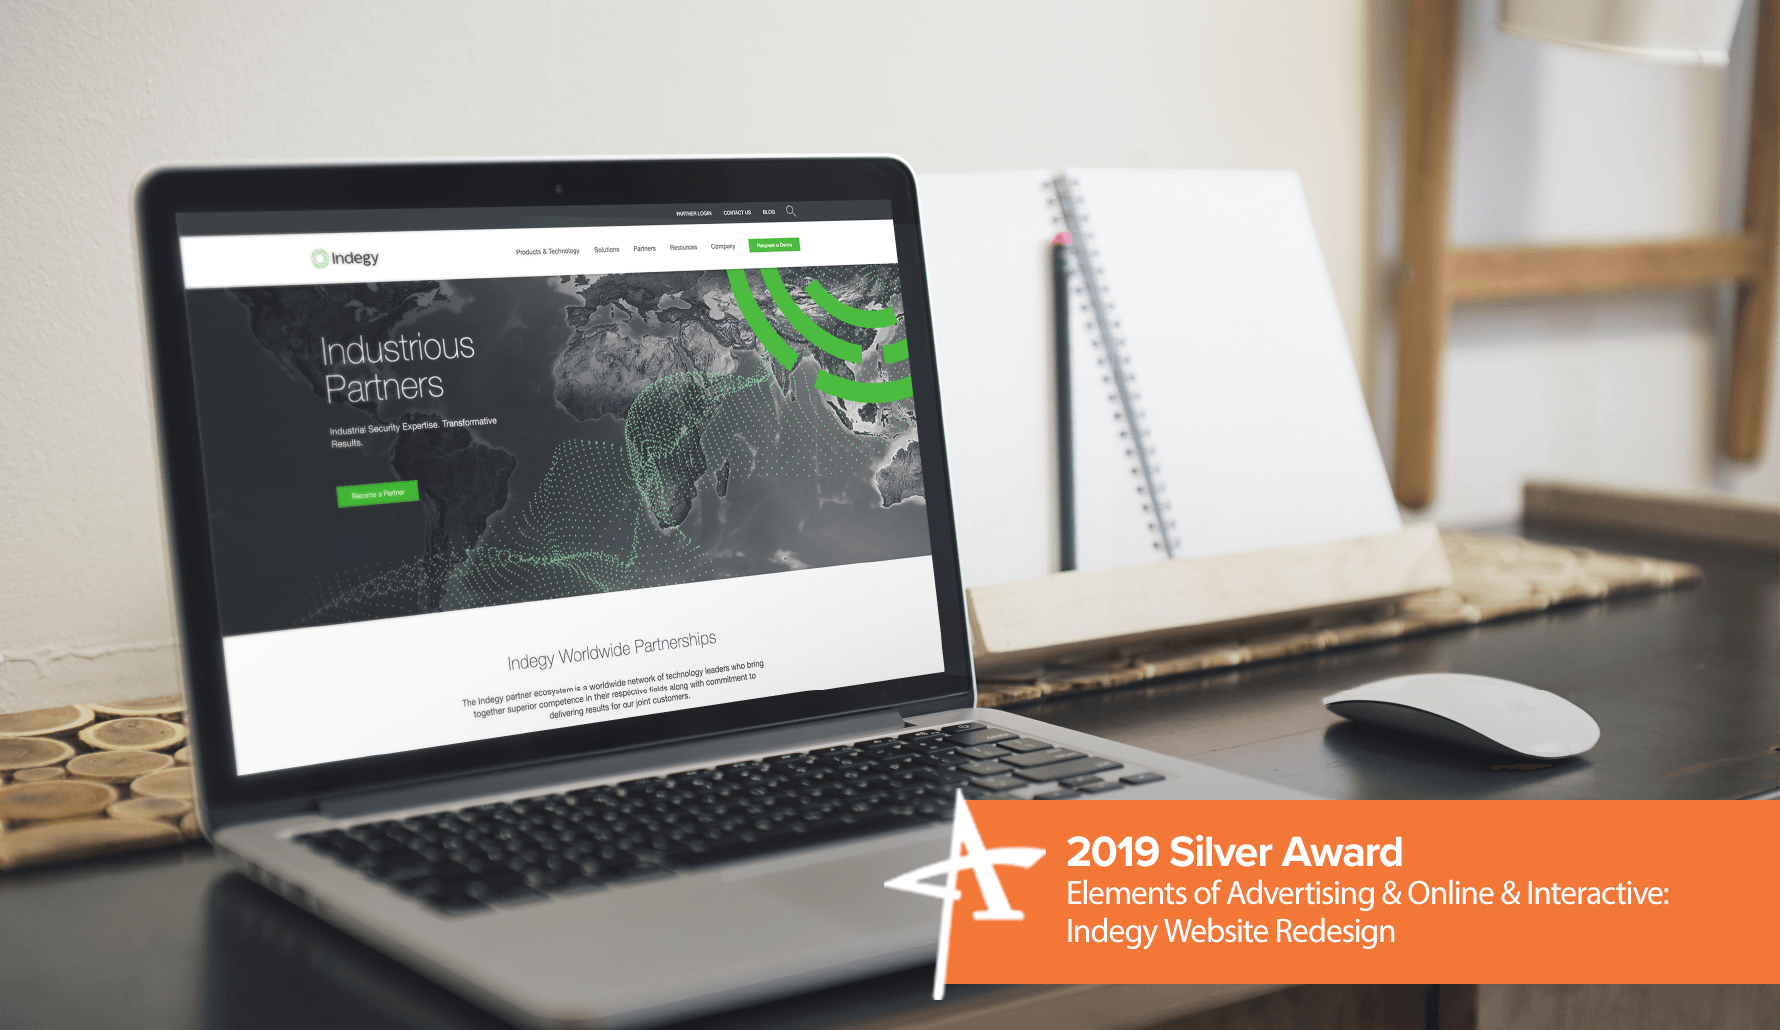 2019 Silver Addy Award - Elements of Advertising & Online & Interactive: Indegy Website Redesign